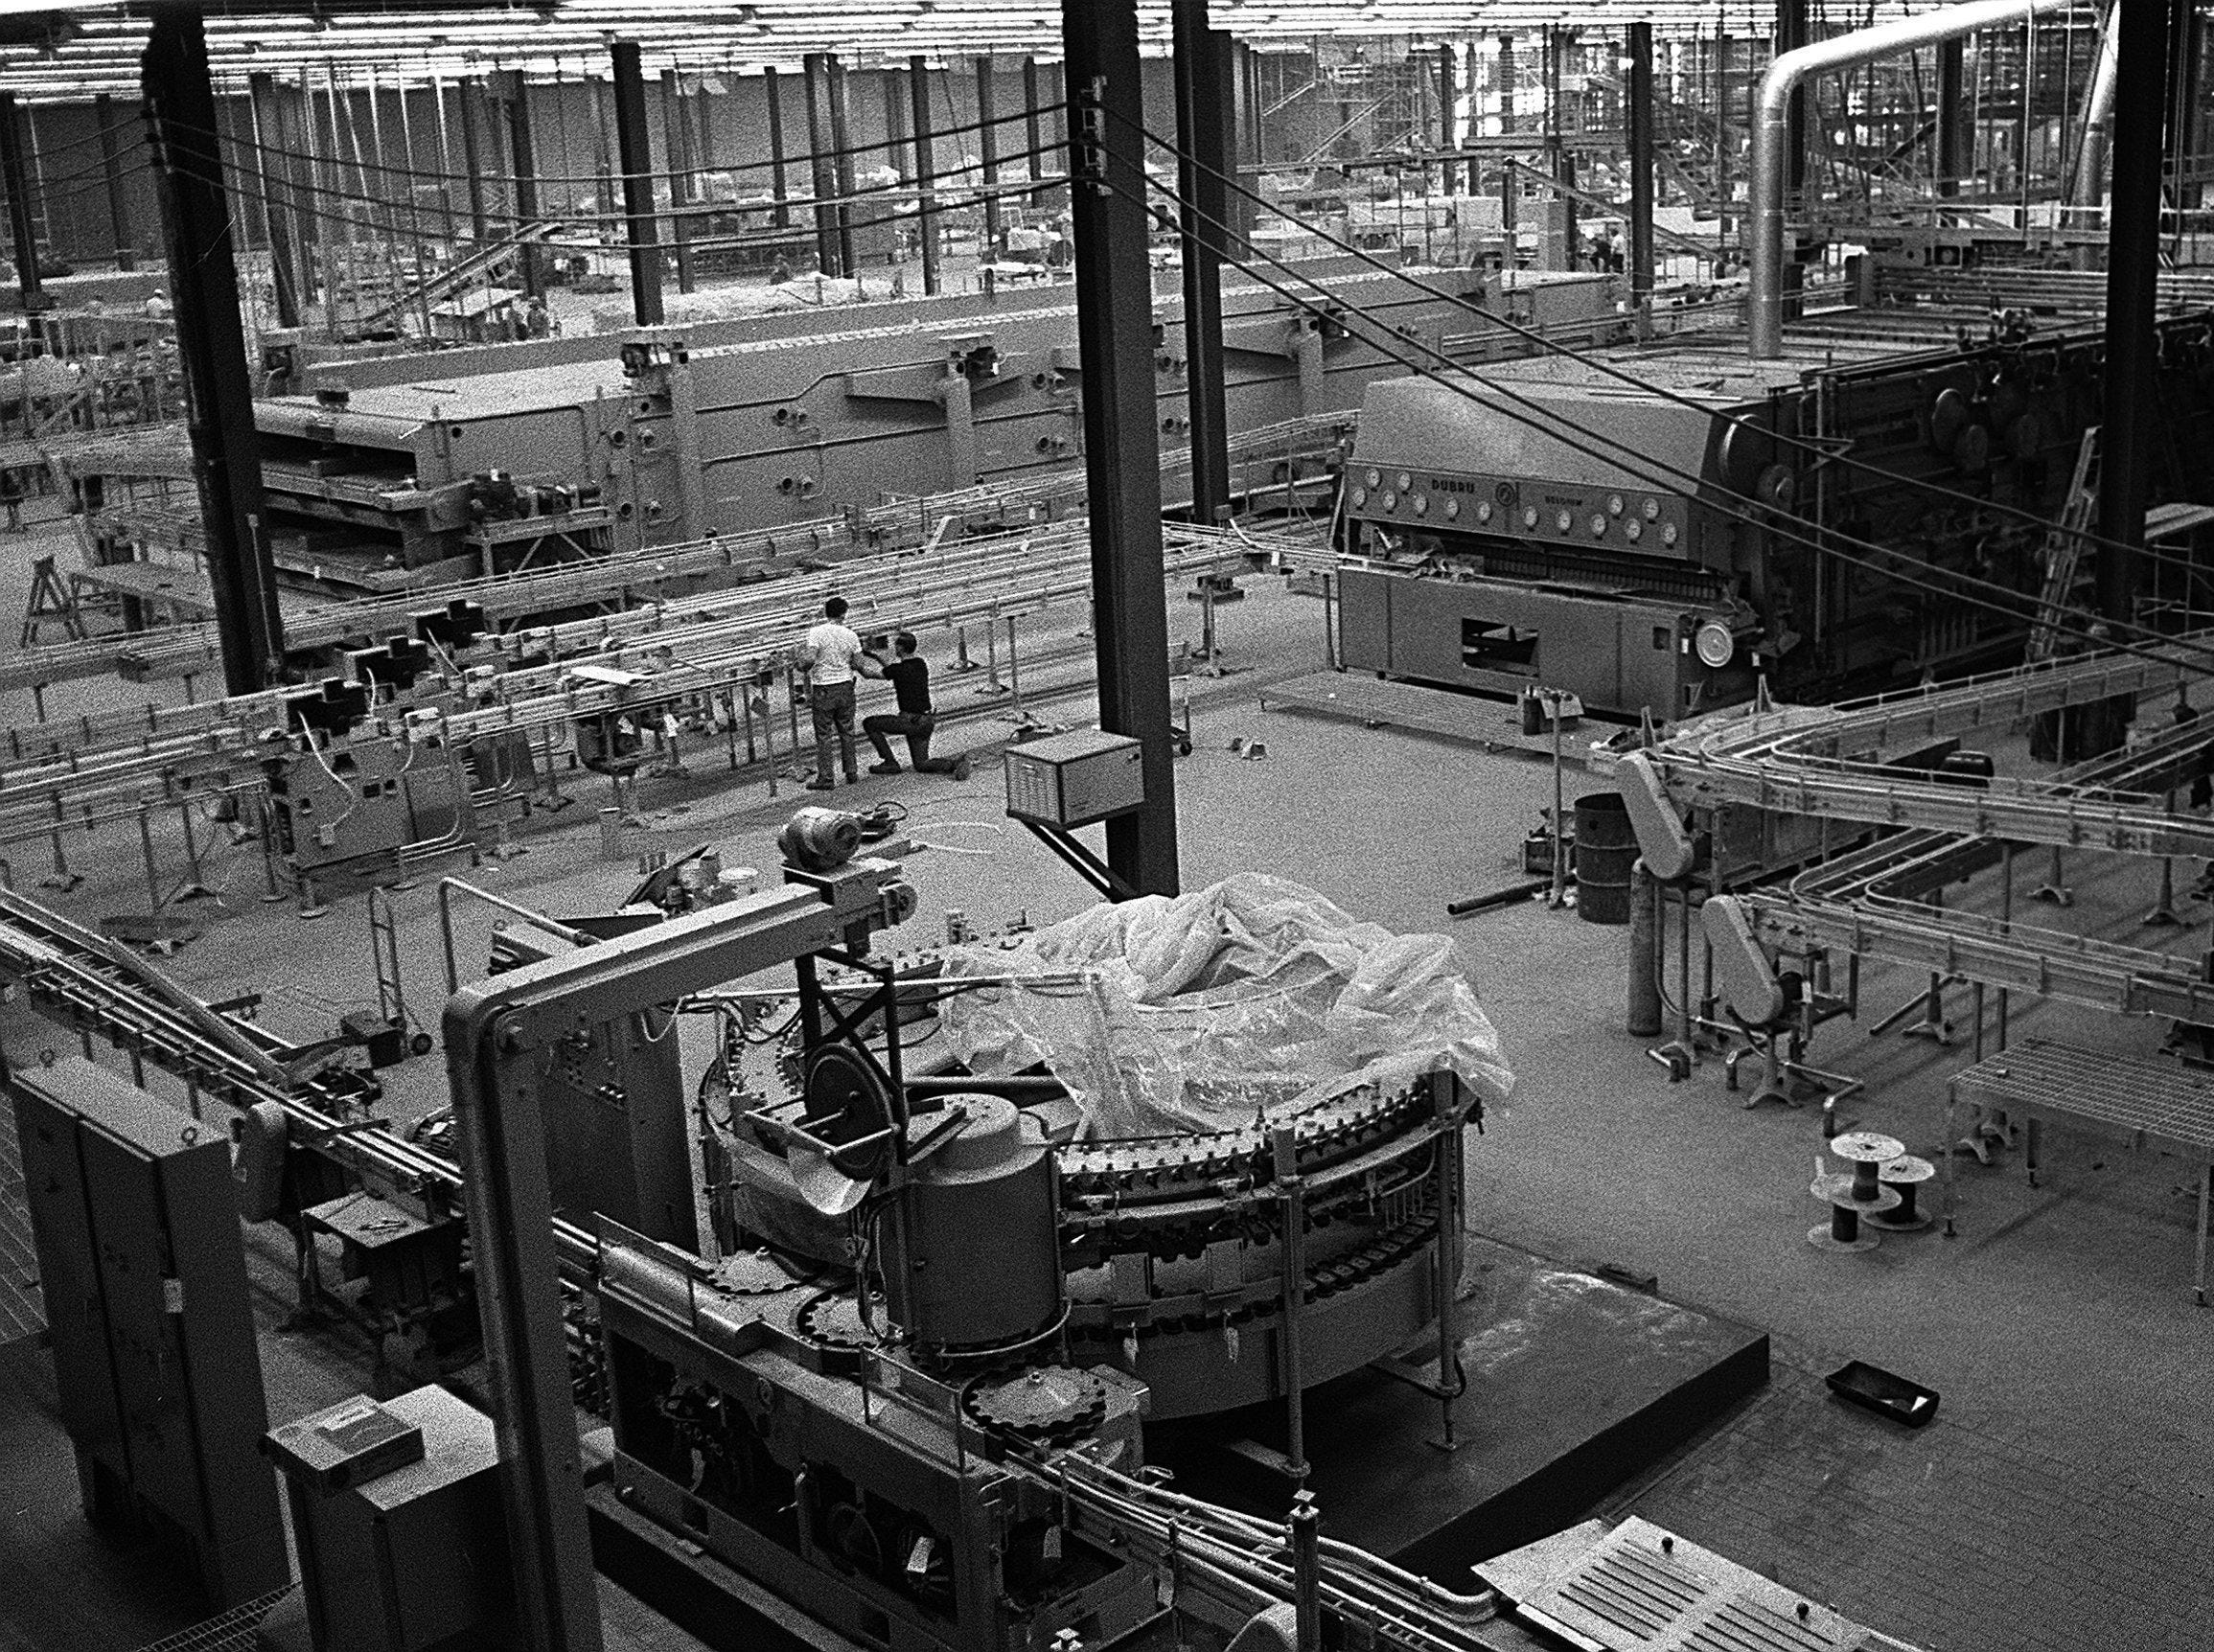 Workers are in the final stages of construction at the Joseph Schlitz Brewing Co. plant at 5151 Raines Road in mid-April 1971.  Work at the 40-acre site will end and beer making will begin soon, according to plant manager John Stevens.  Each bottle production line will fill, label and cap 850 bottles per minute when the plant is completed.